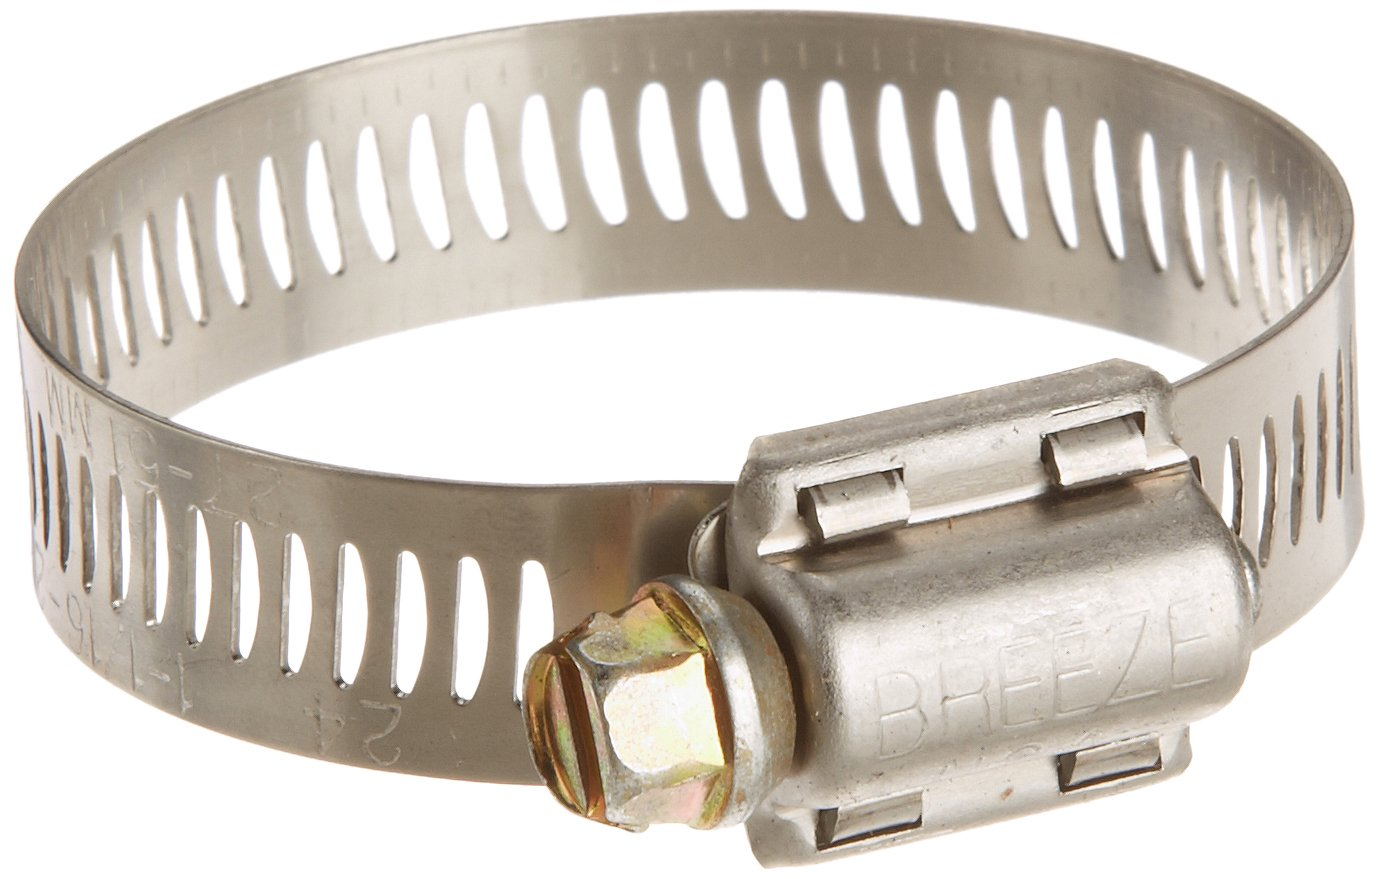 "Breeze Power-Seal Stainless Steel Hose Clamp, Worm-Drive, SAE Size 24, 1-1/16"" to 2"" Diameter Range, 1/2"" Bandwidth (Pack of 10)"